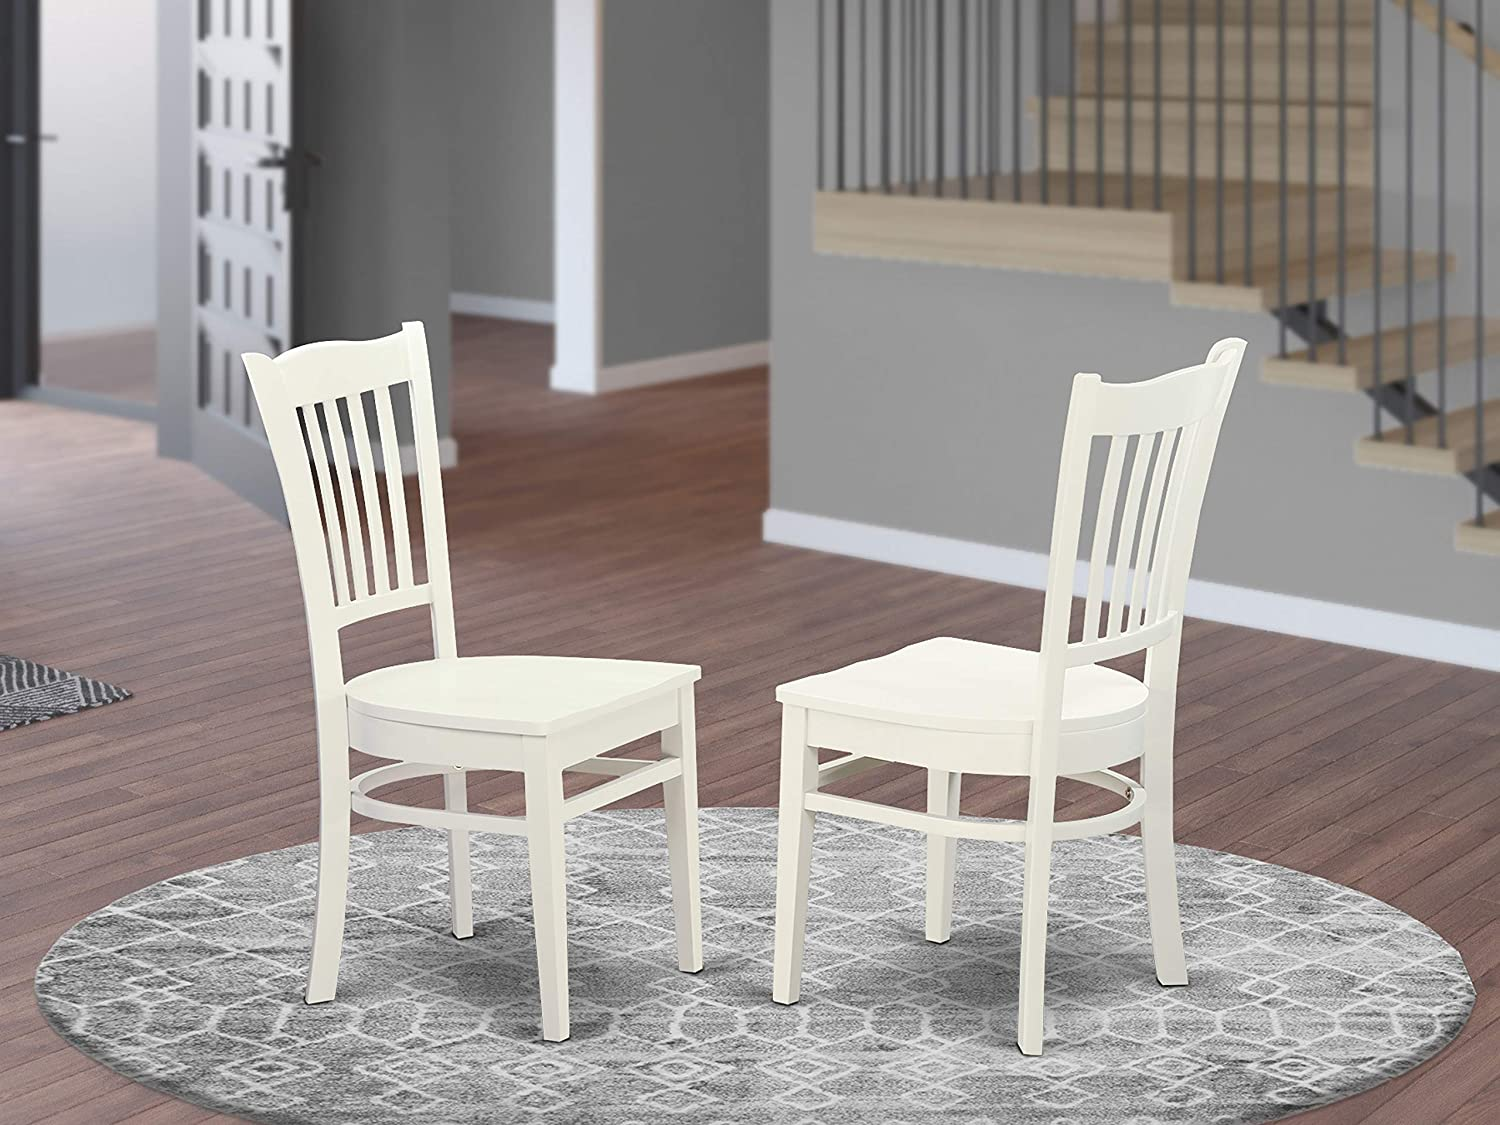 Groton Dining Chair With Wood Seat In Linen White Finish